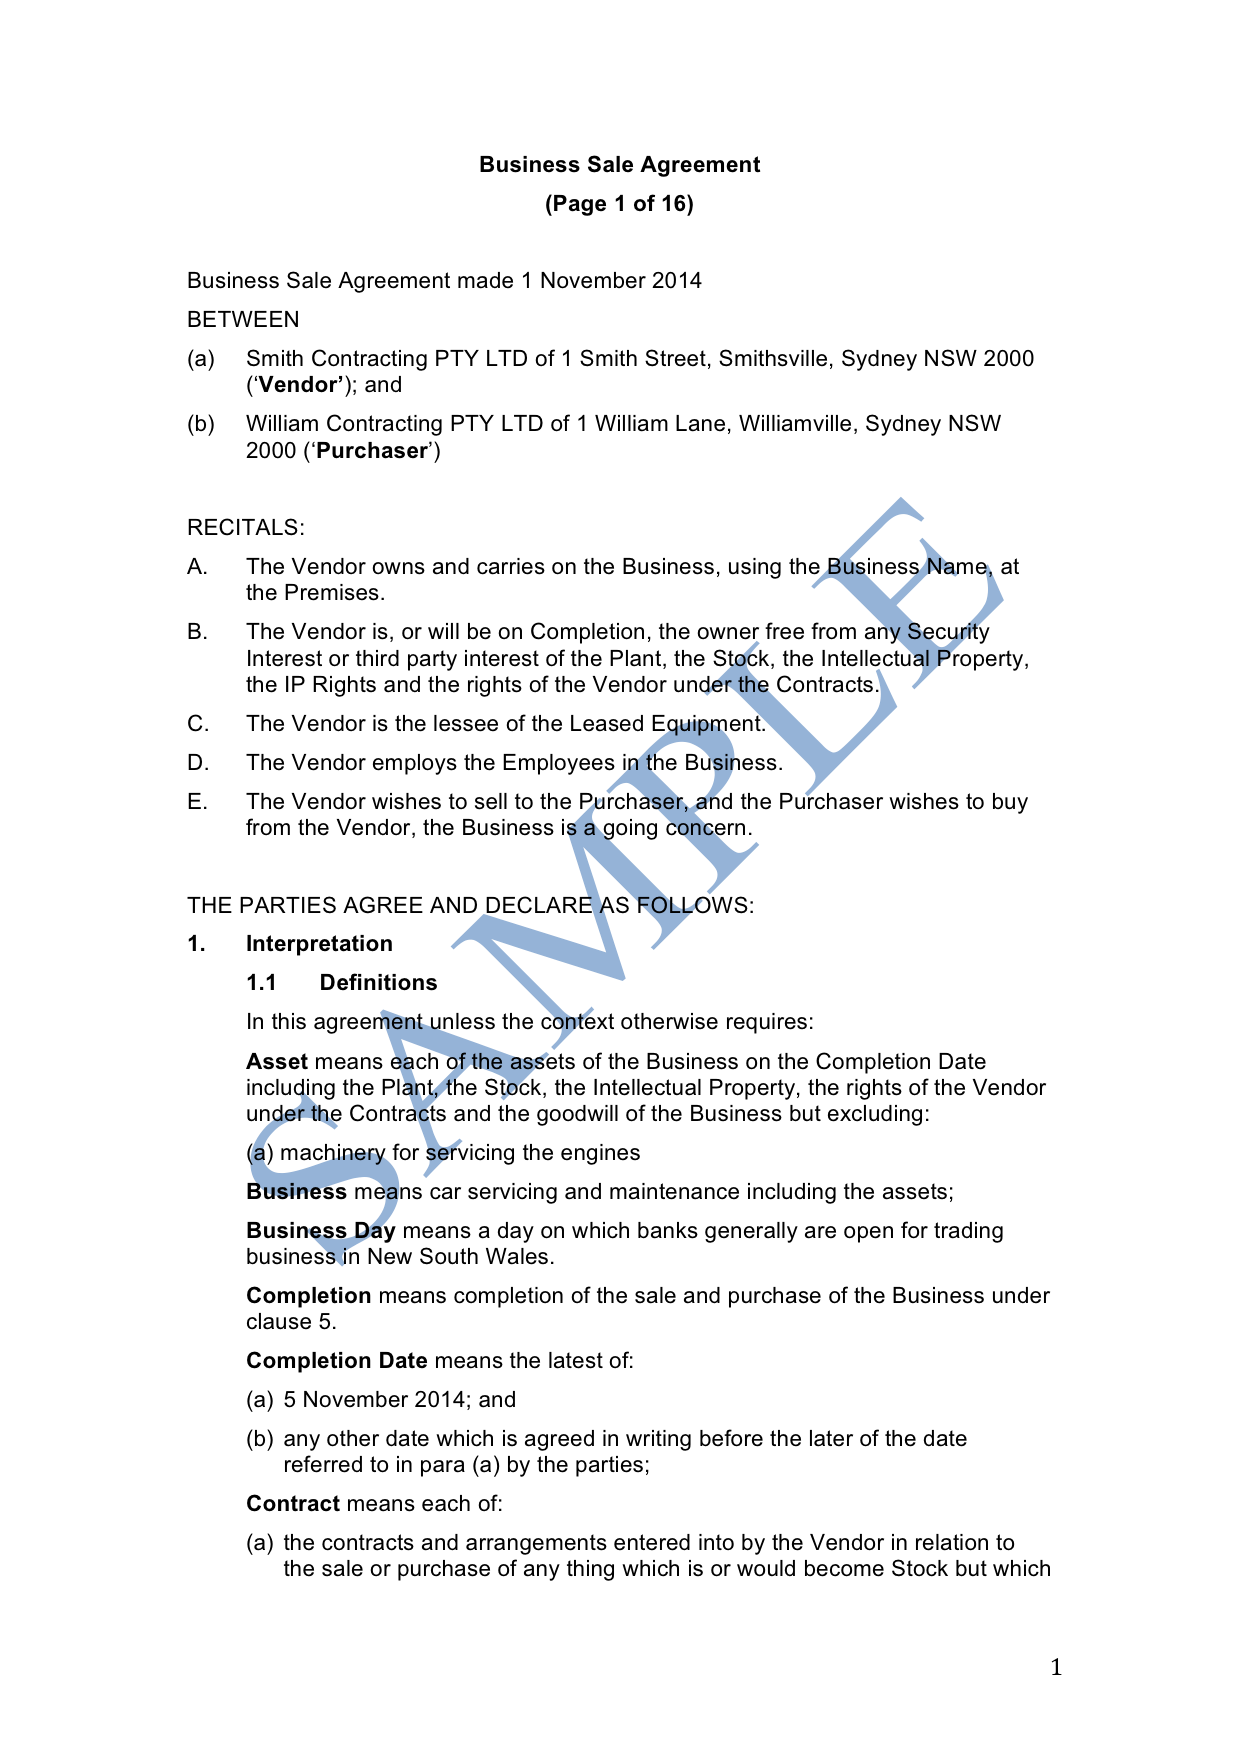 exclusive non compete agreement sample cover letter template for exclusive non compete agreement sample noncompete agreement rocket lawyer trade agreement sample non compete agreement template